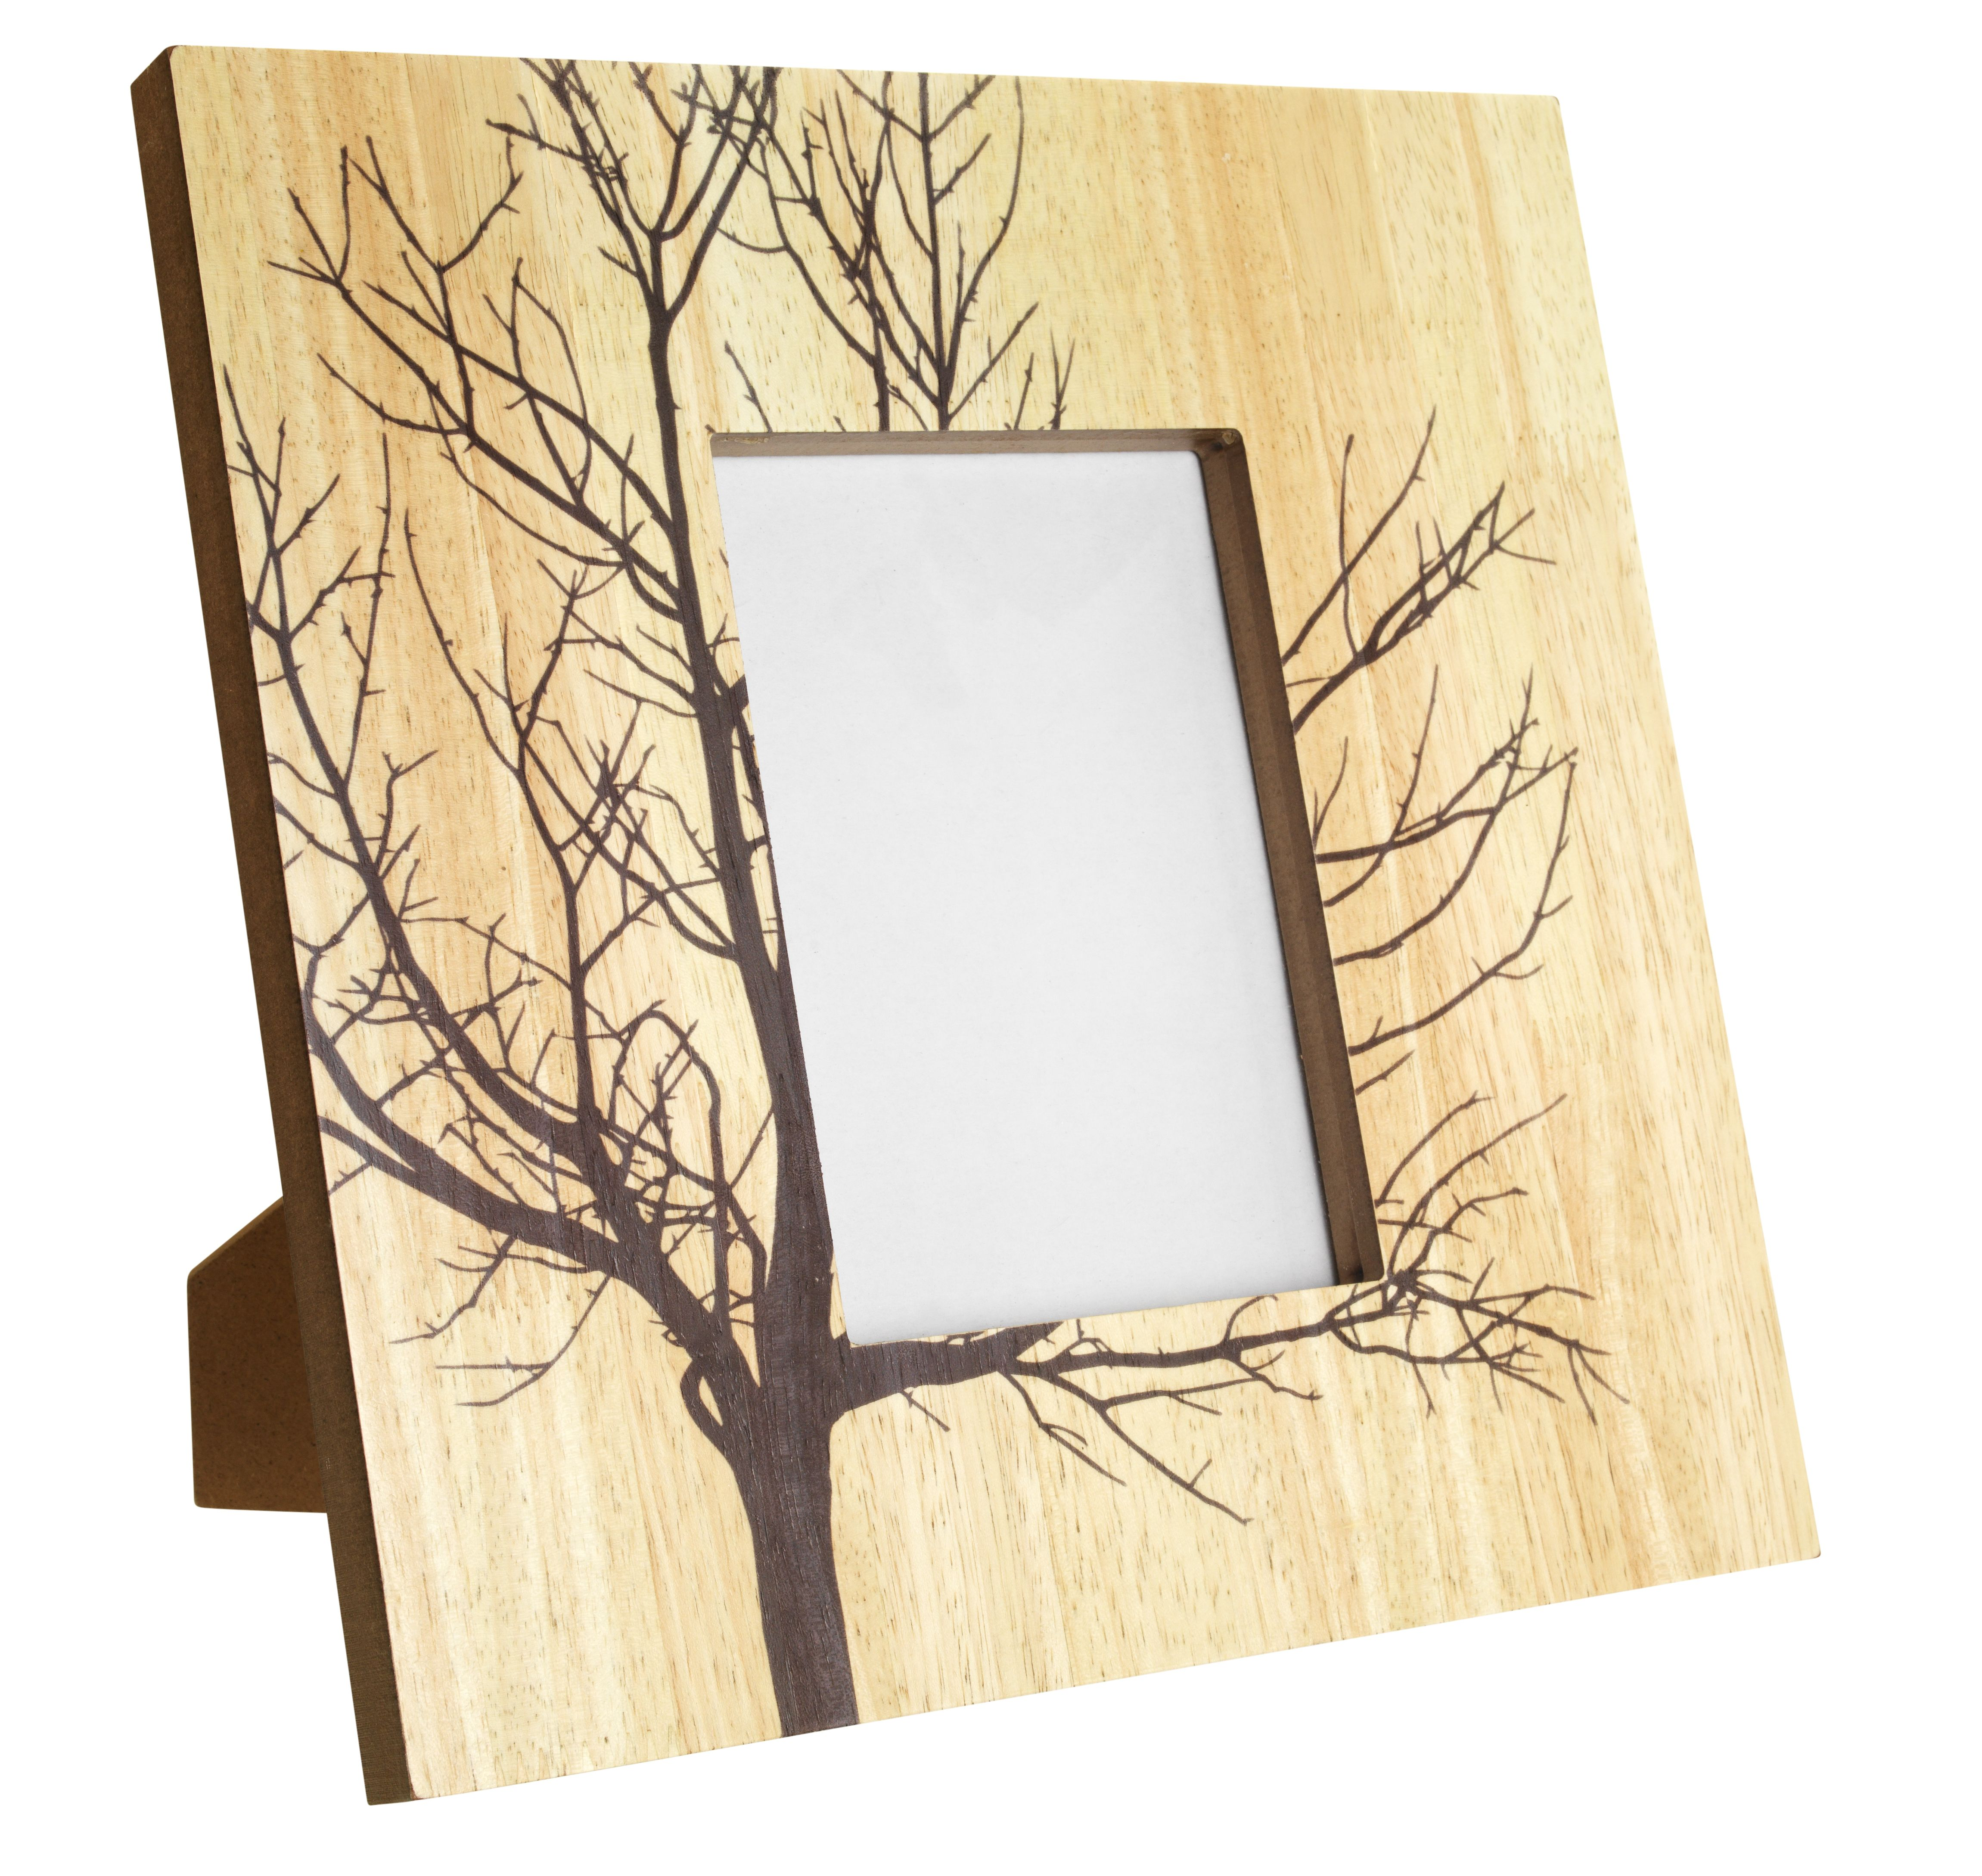 This Wooden Frame With A Tree Branch Design Gives A